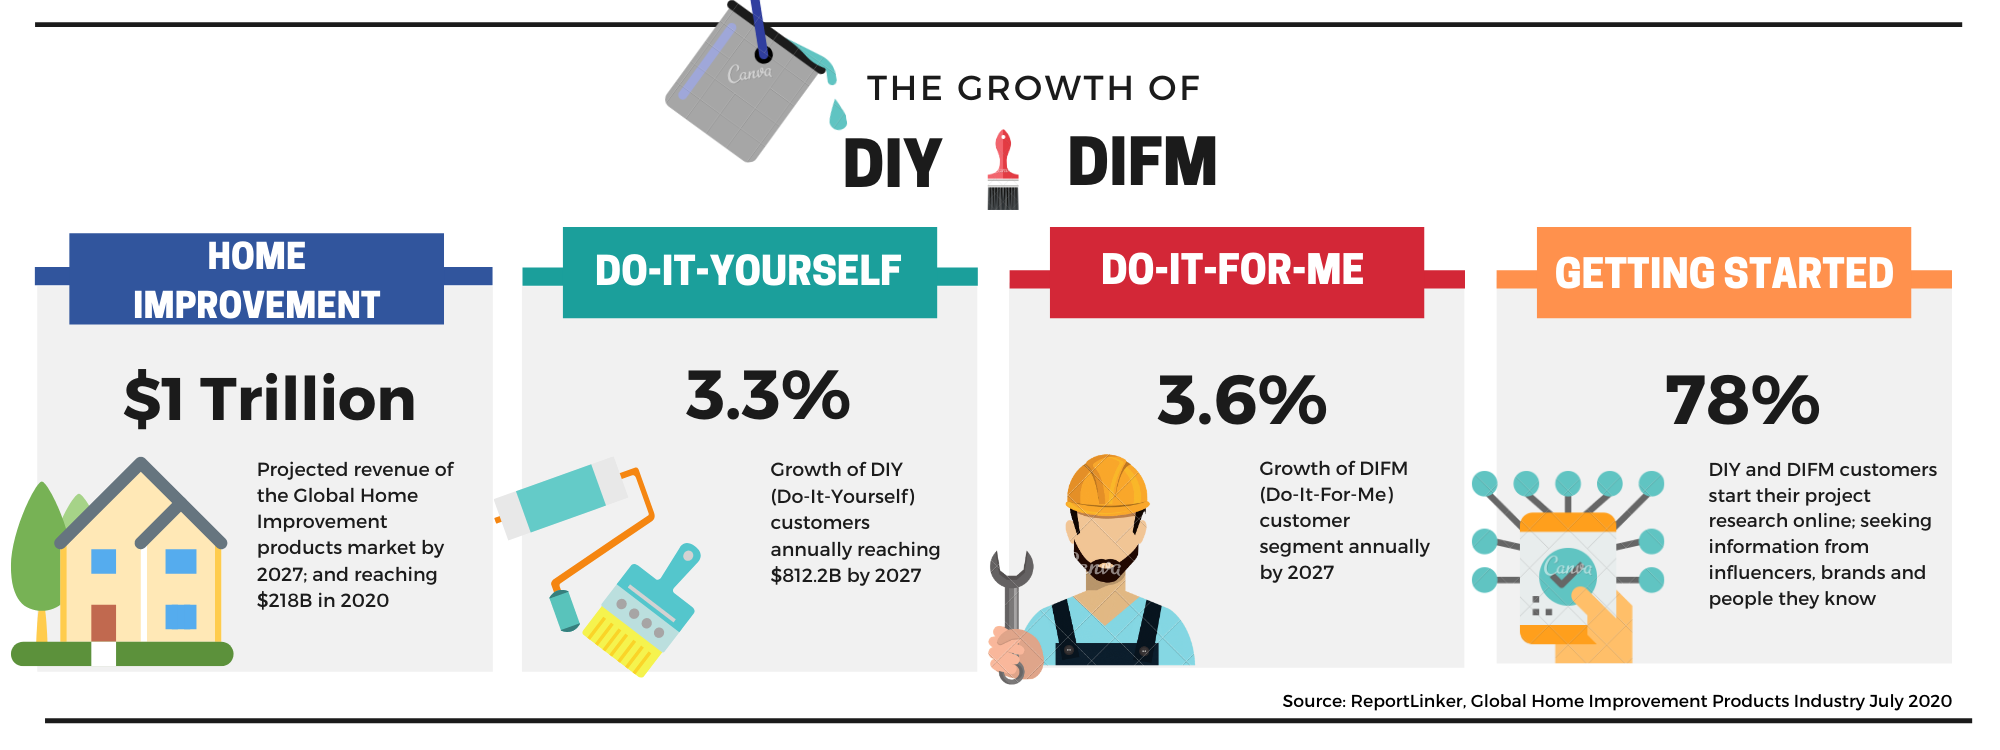 Infographic of the growth of DIY and DIFM projects